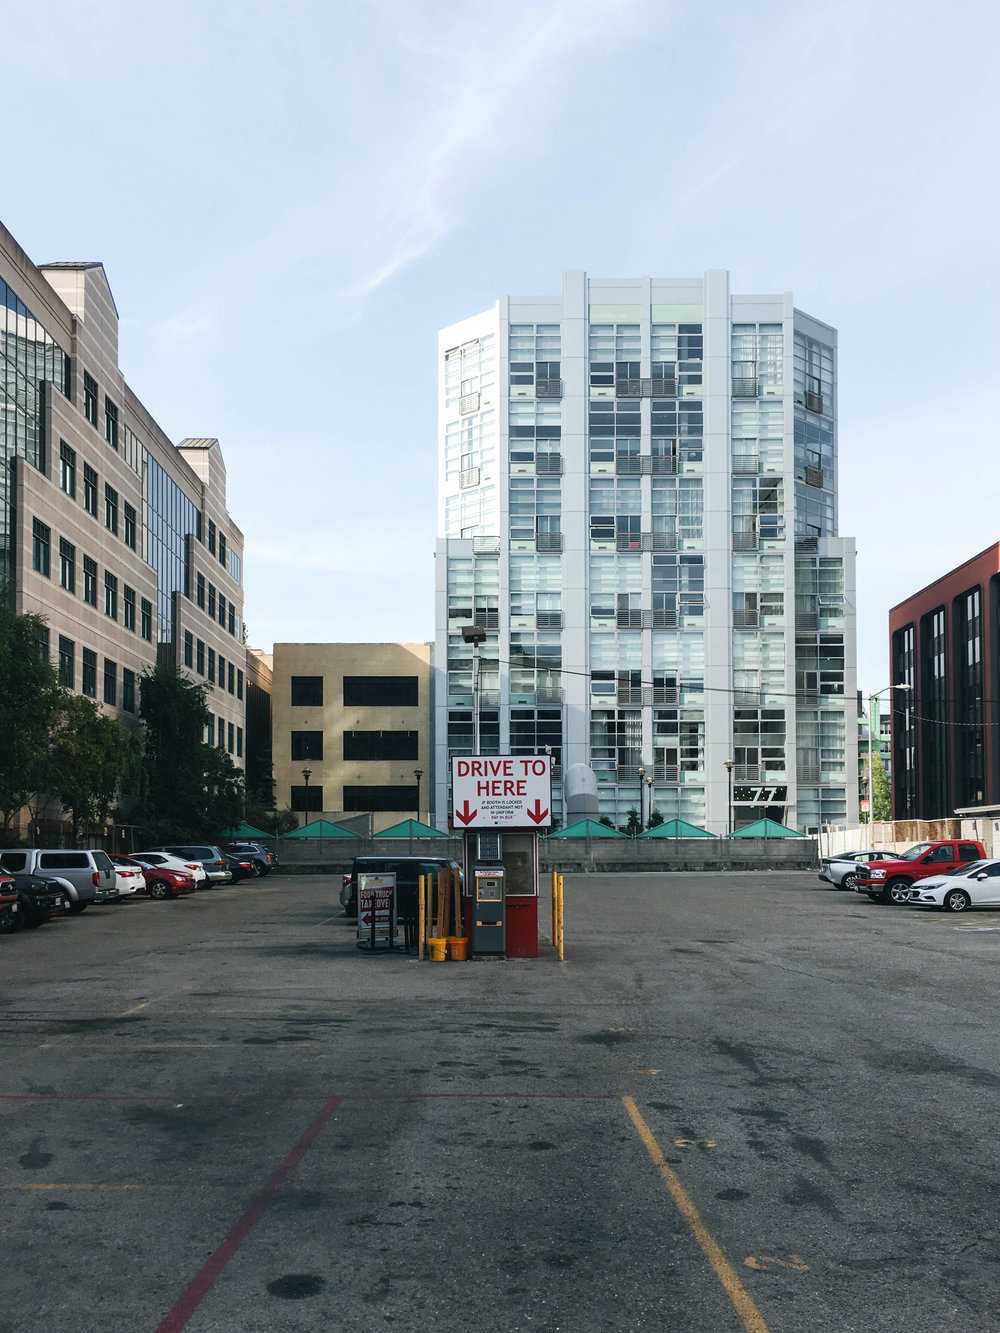 "<p style=""font-family:brandon-grotesque;font-weight:500; font-size:11px; text-center:left; color:light grey;letter-spacing: 1px"">OCTOBER 6, 2017 • PARK HERE • 📍 San Francisco, CA</p>"